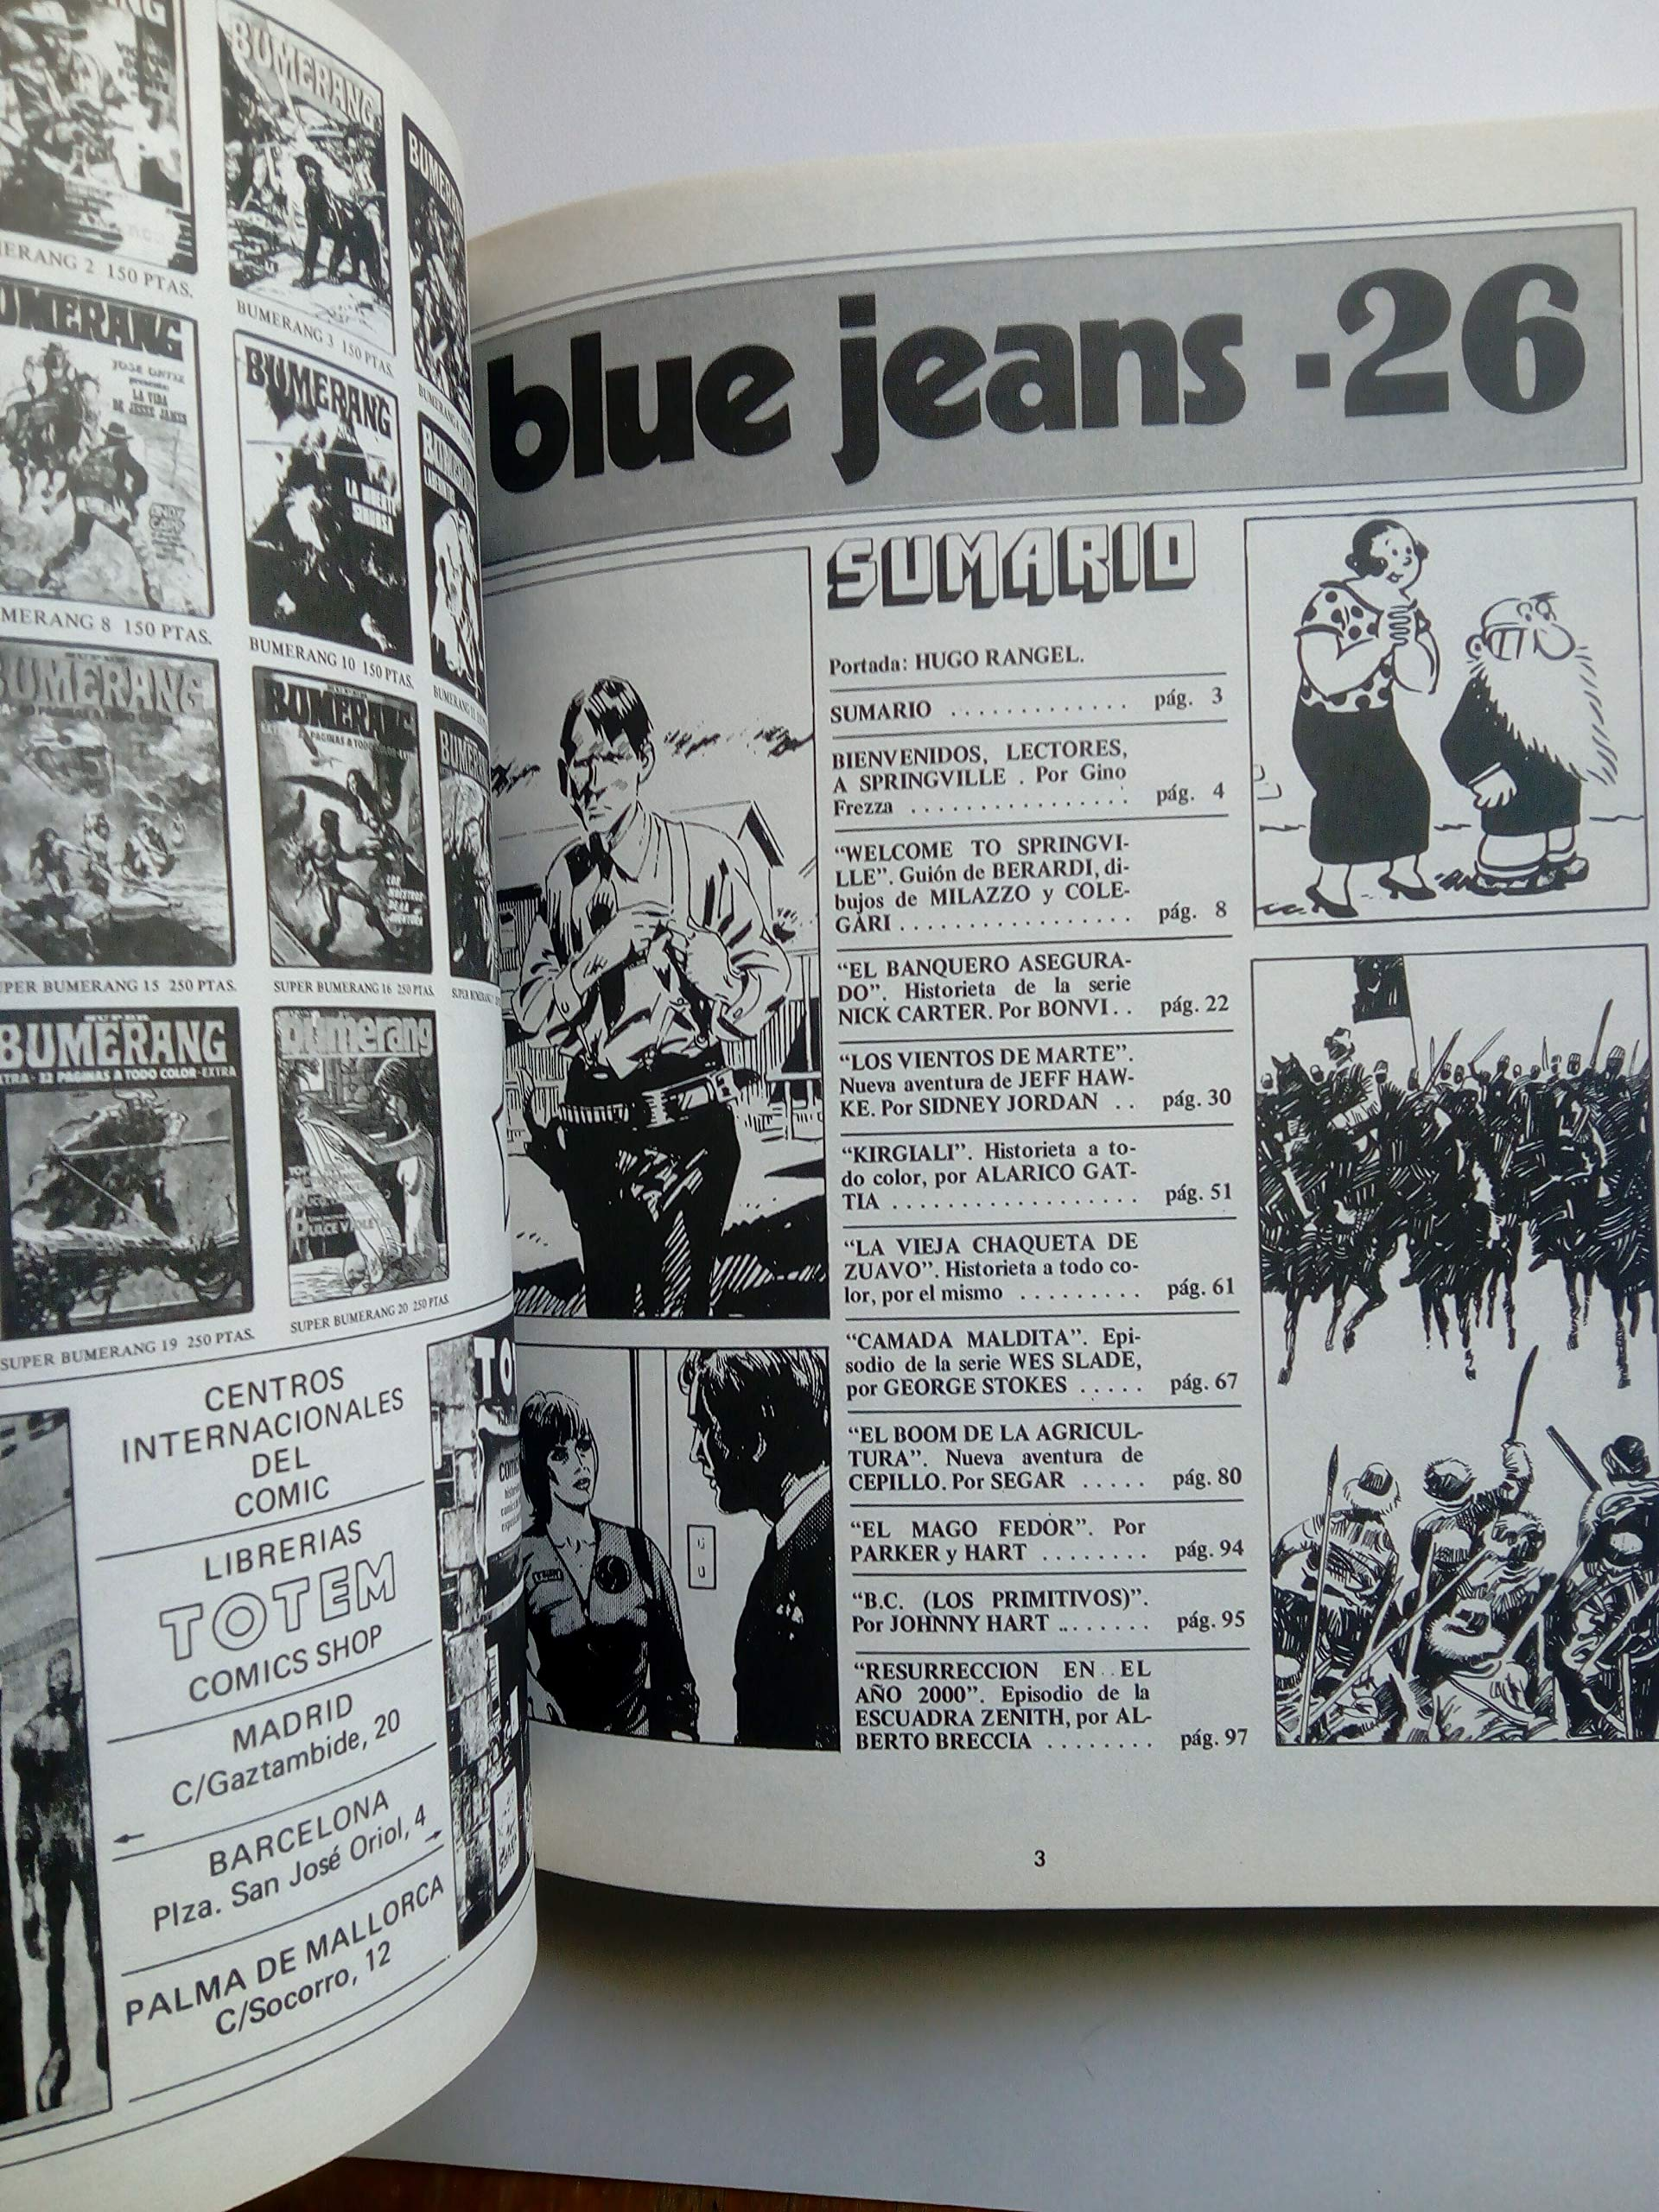 BLUE JEANS. ANTOLOGIA, 2. N. 24-26.: REVISTA.: Amazon.com: Books